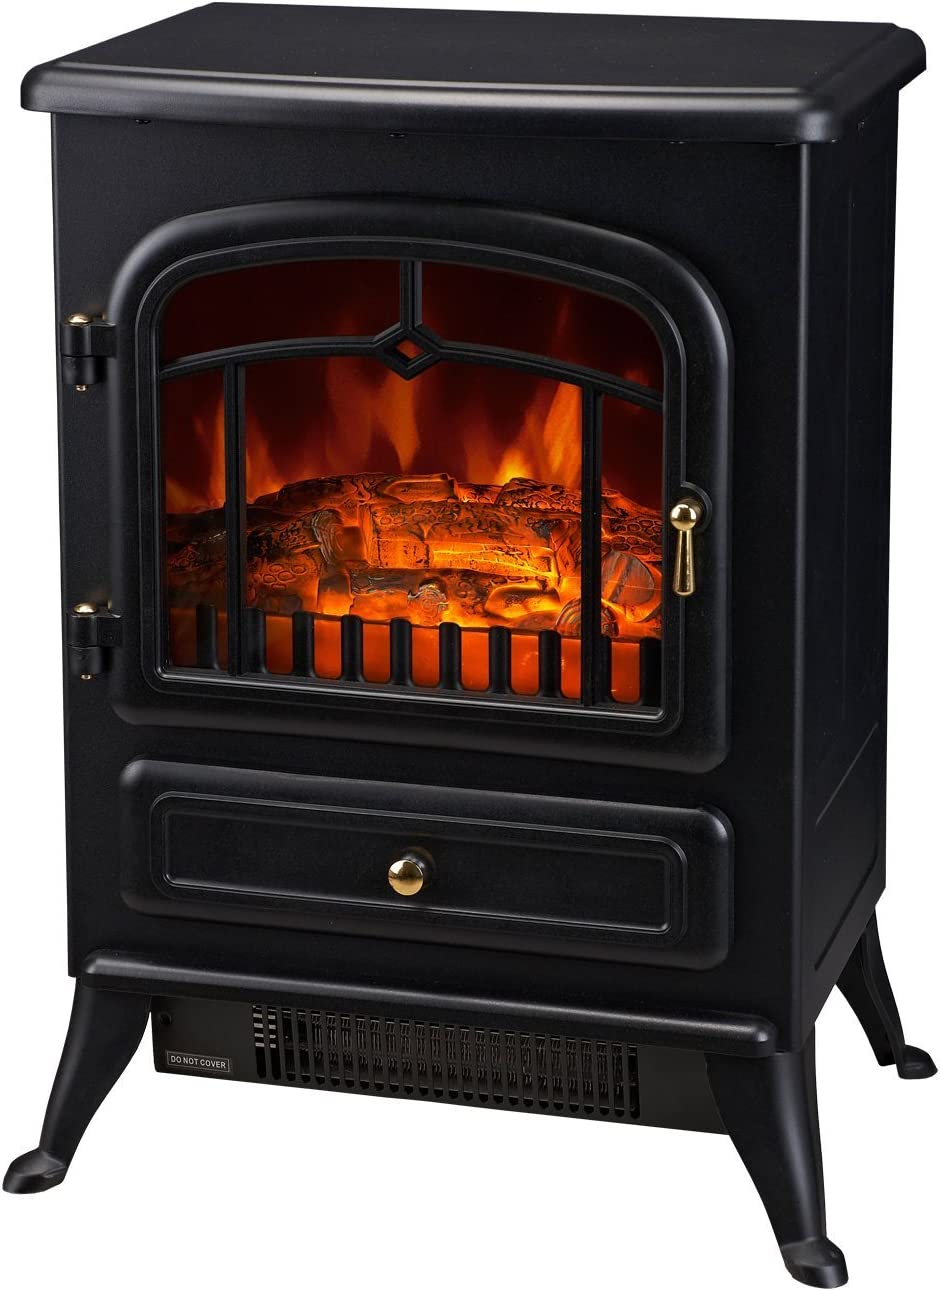 HOMCOM Freestanding Electric Fireplace Heater